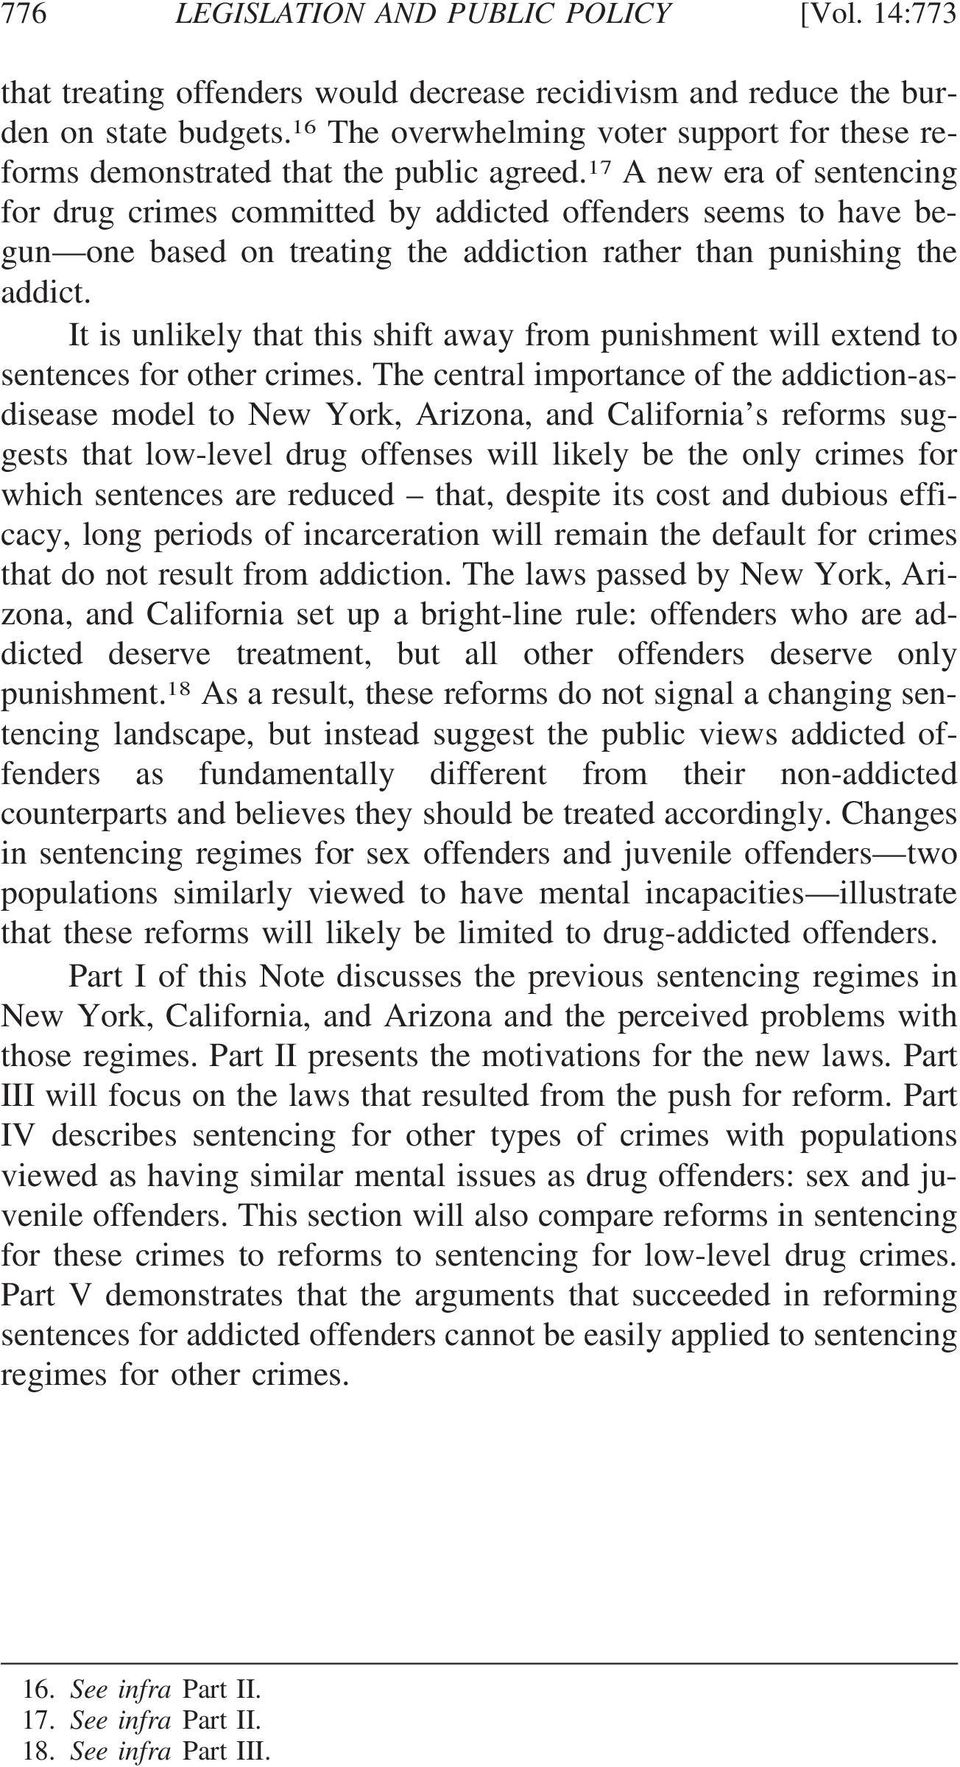 17 A new era of sentencing for drug crimes committed by addicted offenders seems to have begun one based on treating the addiction rather than punishing the addict.